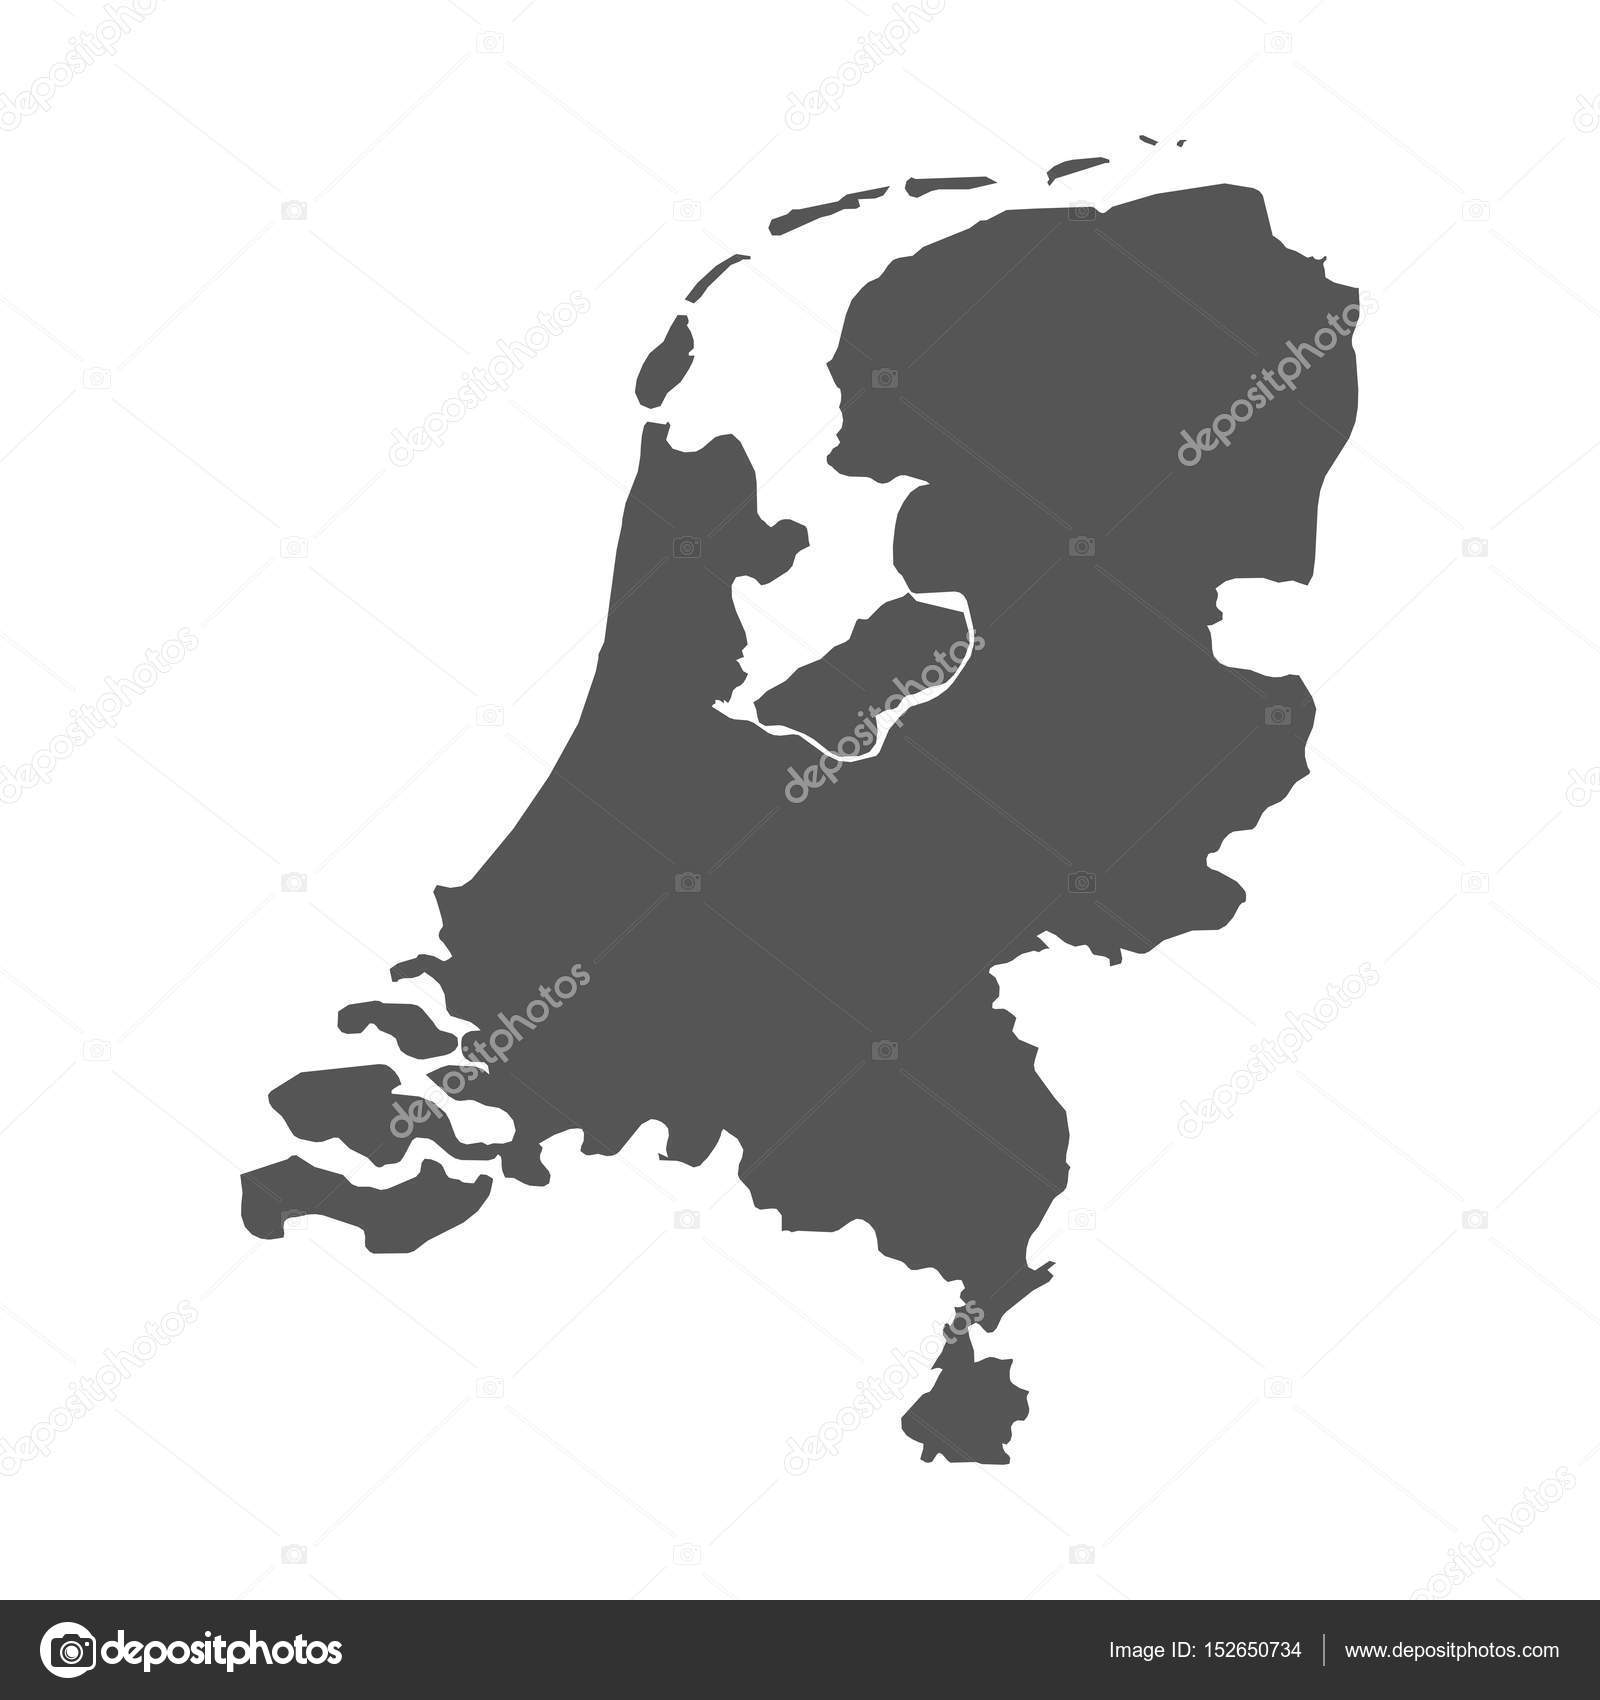 Netherlands vector map black icon on white background stock netherlands vector map black icon on white background stock vector gumiabroncs Images